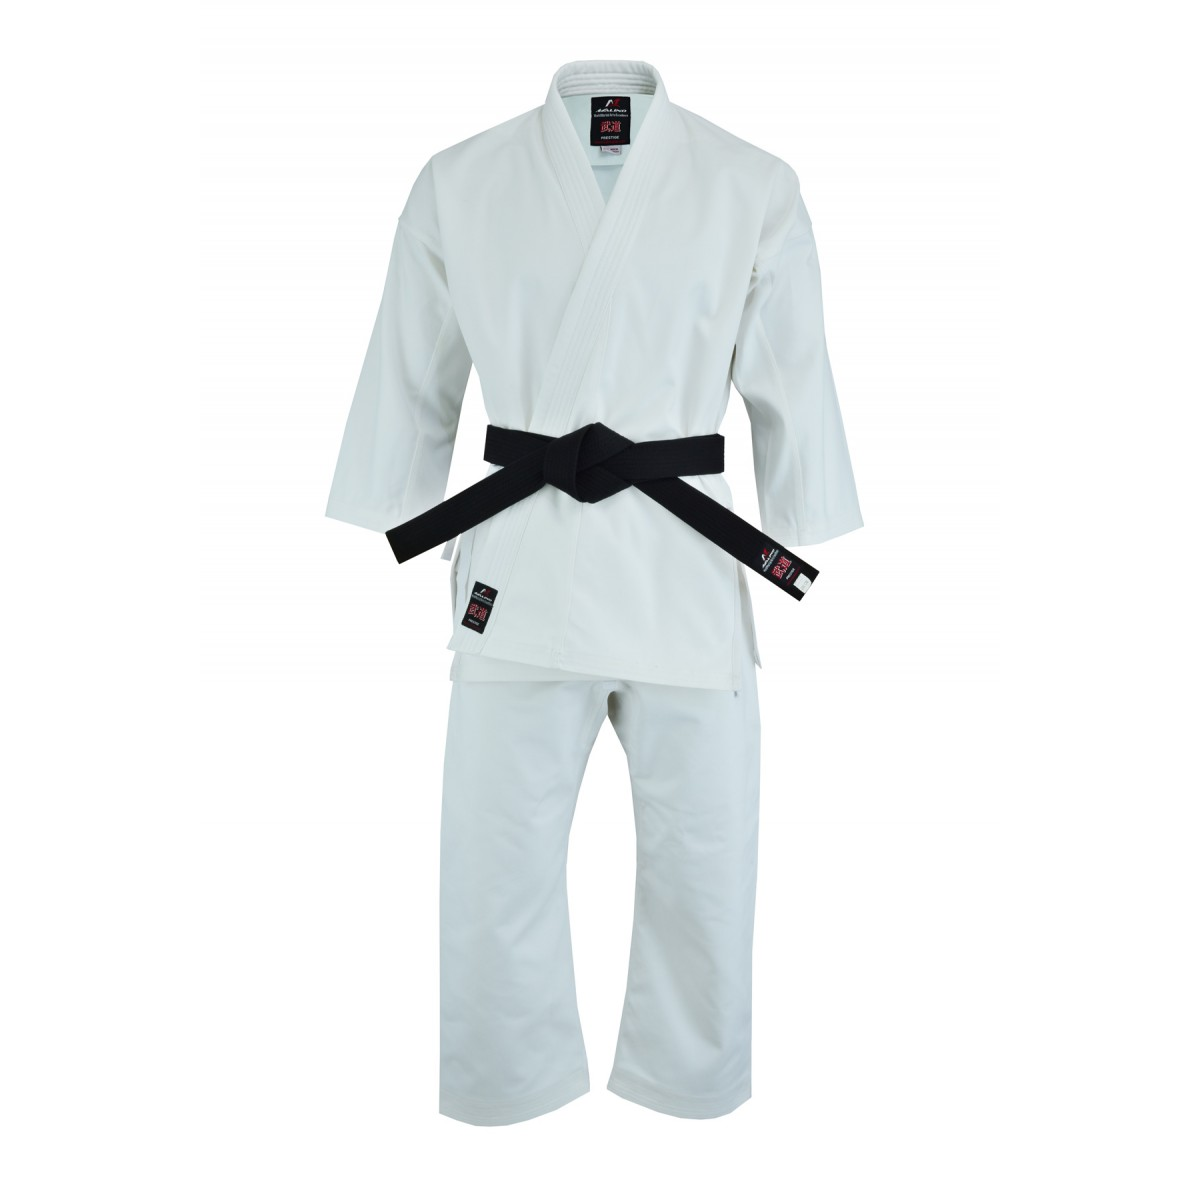 Malino Adult Middleweight Karate Suit - 12oz Canvas